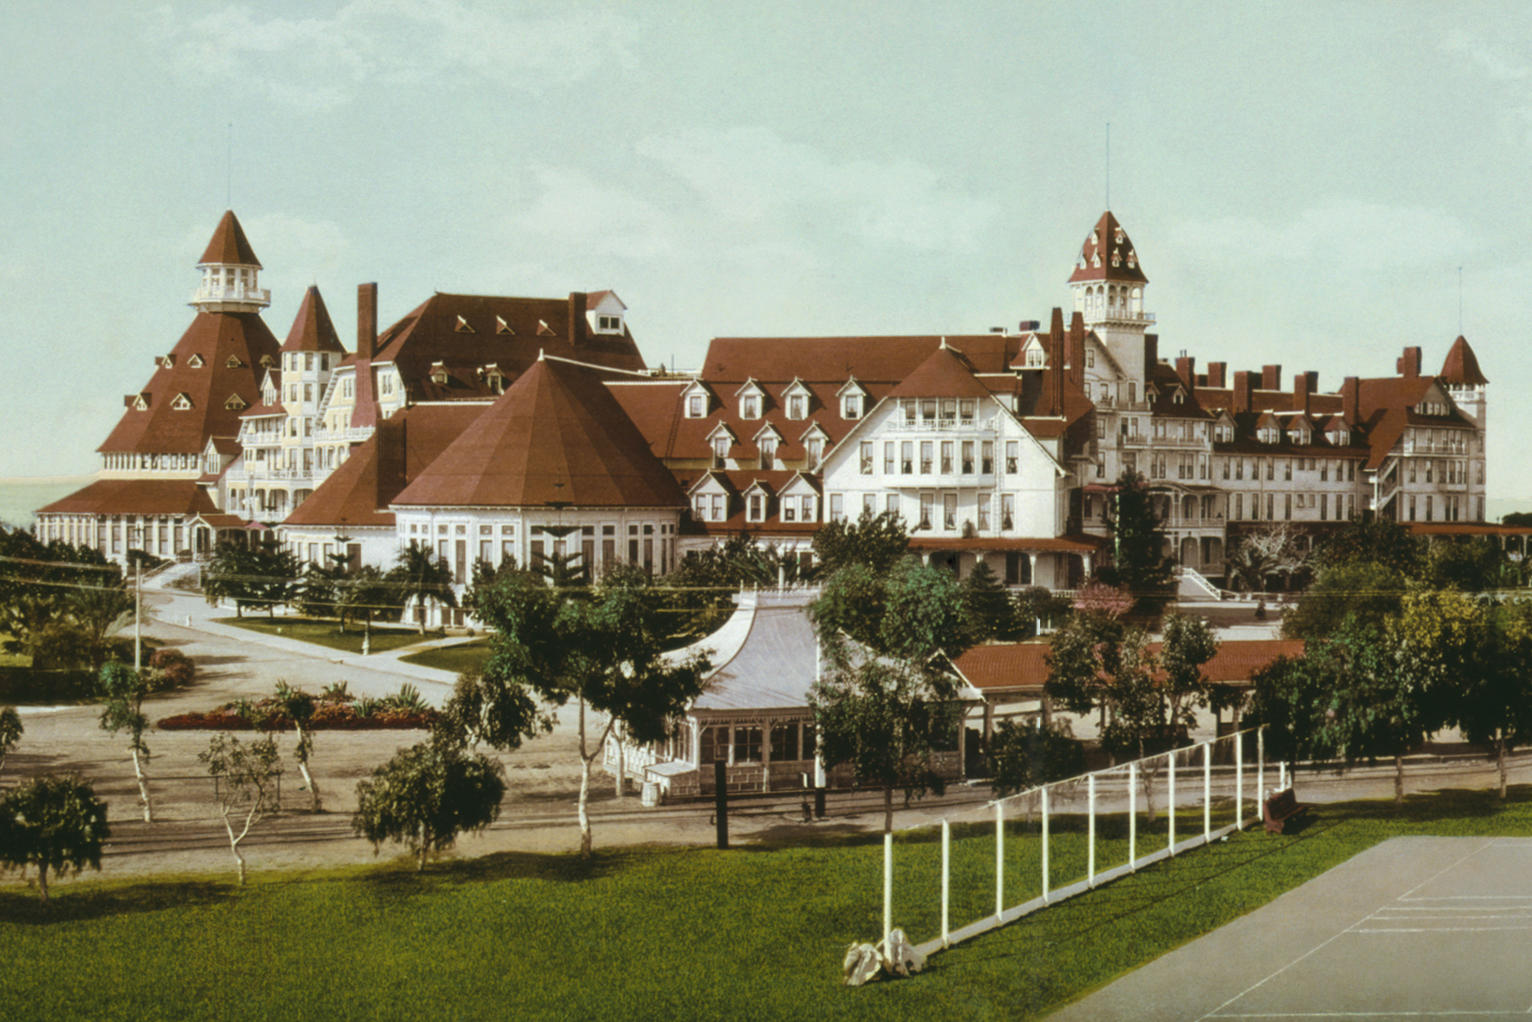 Haunted hotel coronado has a thanksgiving ghost story for Haunted hotel in san diego